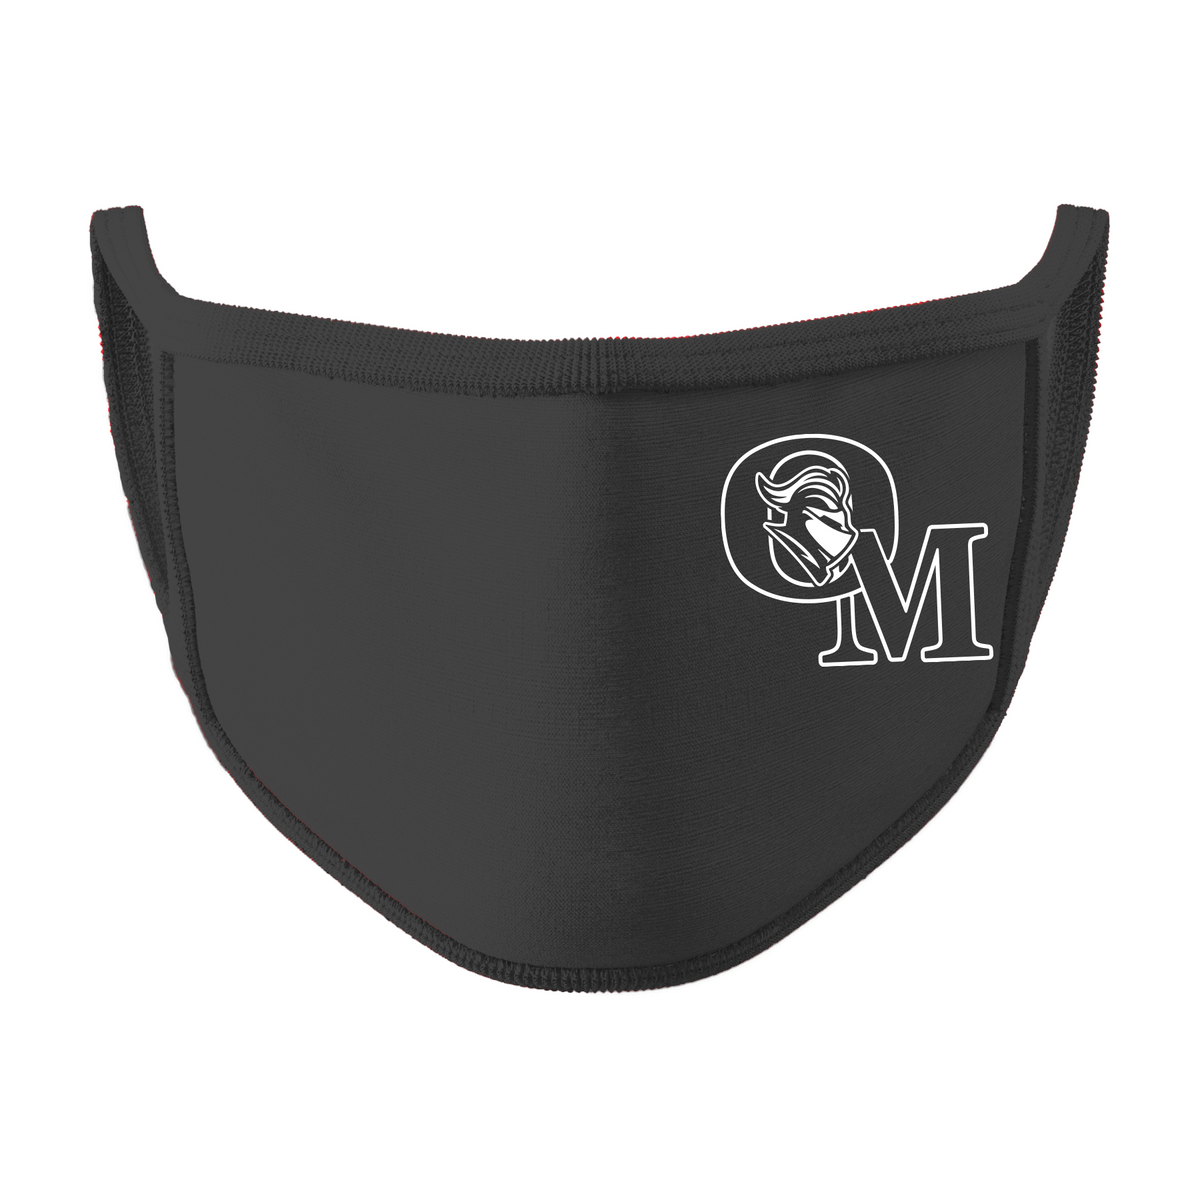 Organ Mountain High School Face Mask